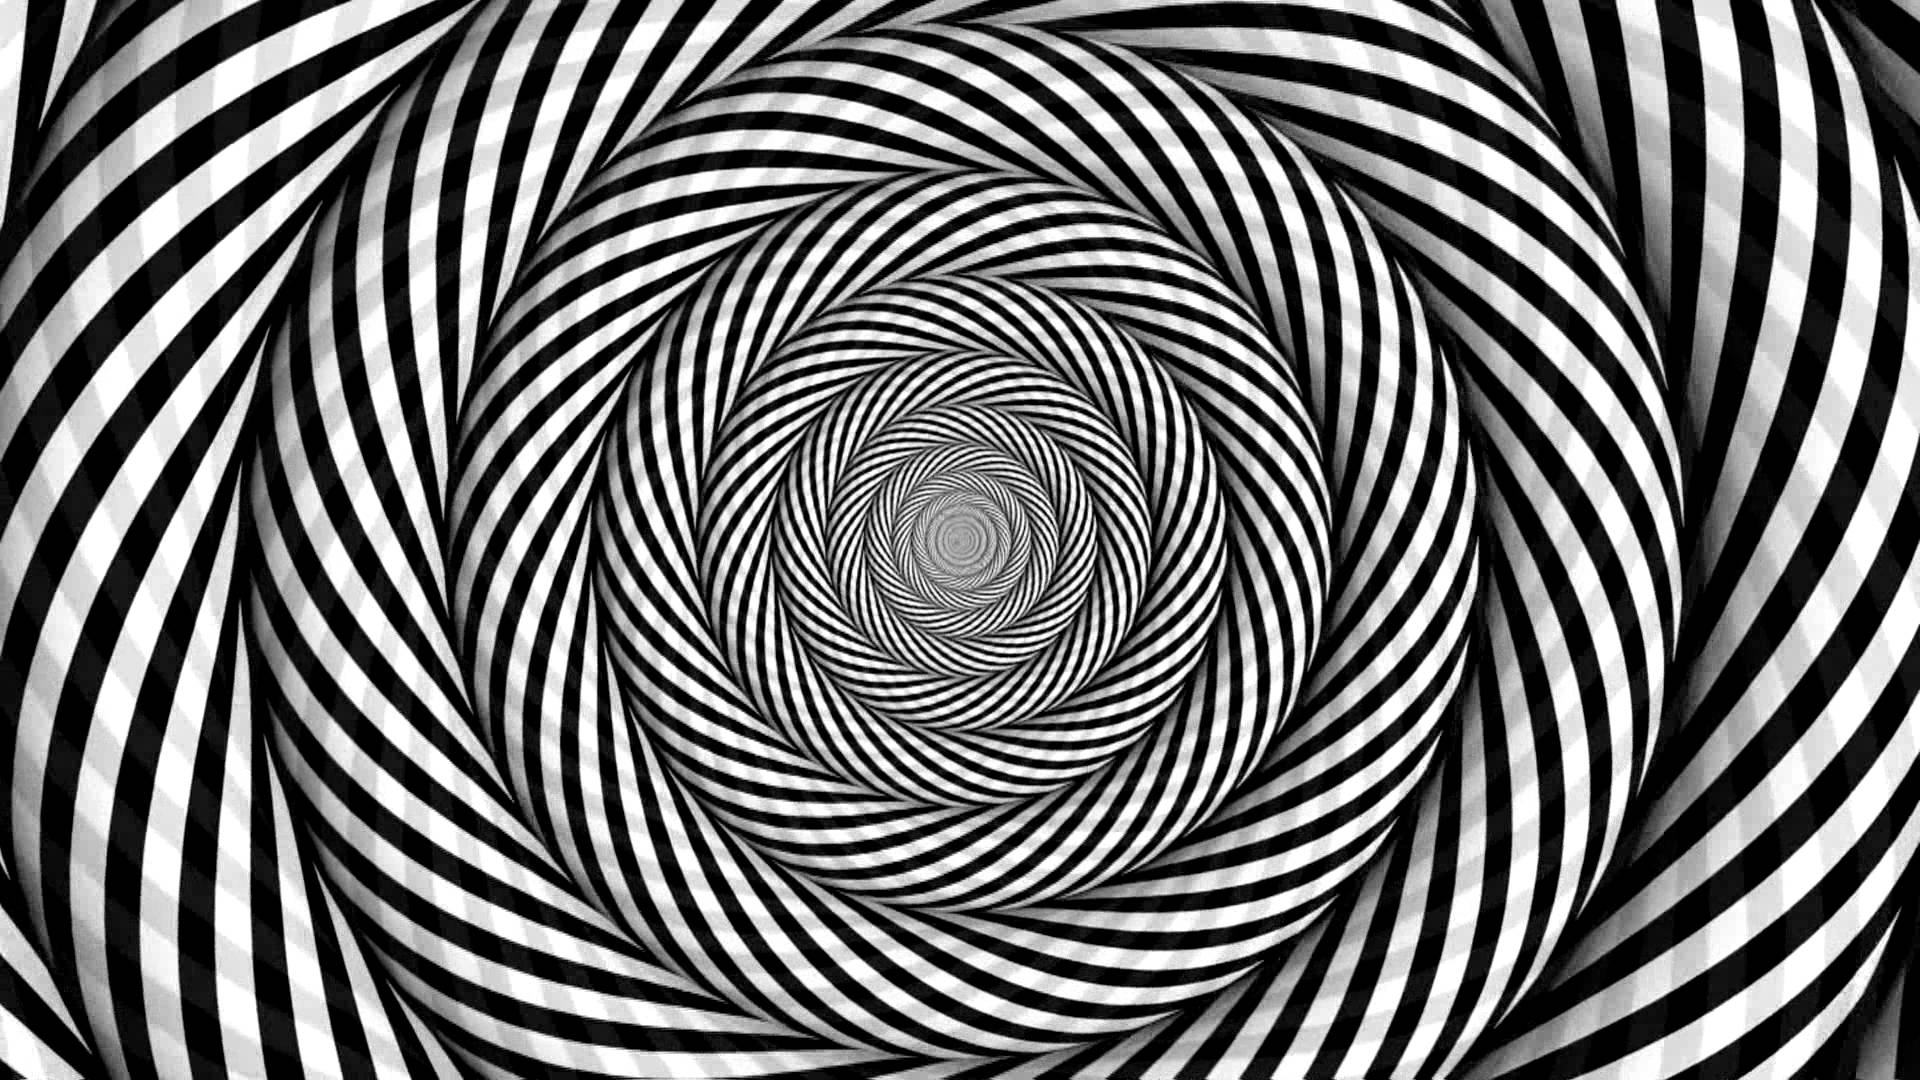 Cool Trippy Wallpaper Black and White